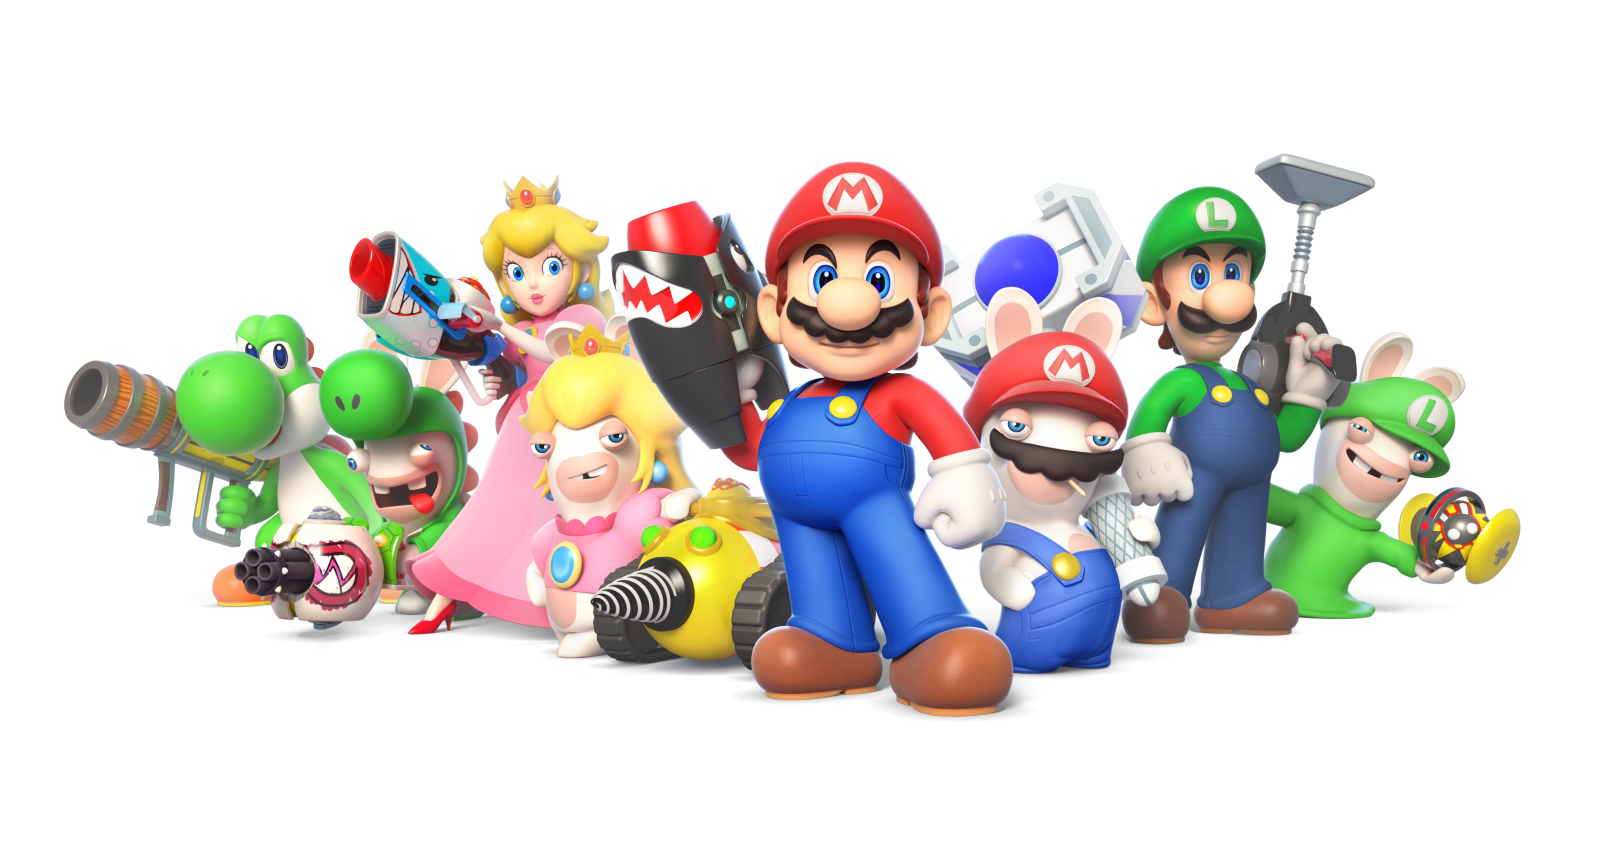 Mario + Rabbids: Kingdom Battle characters